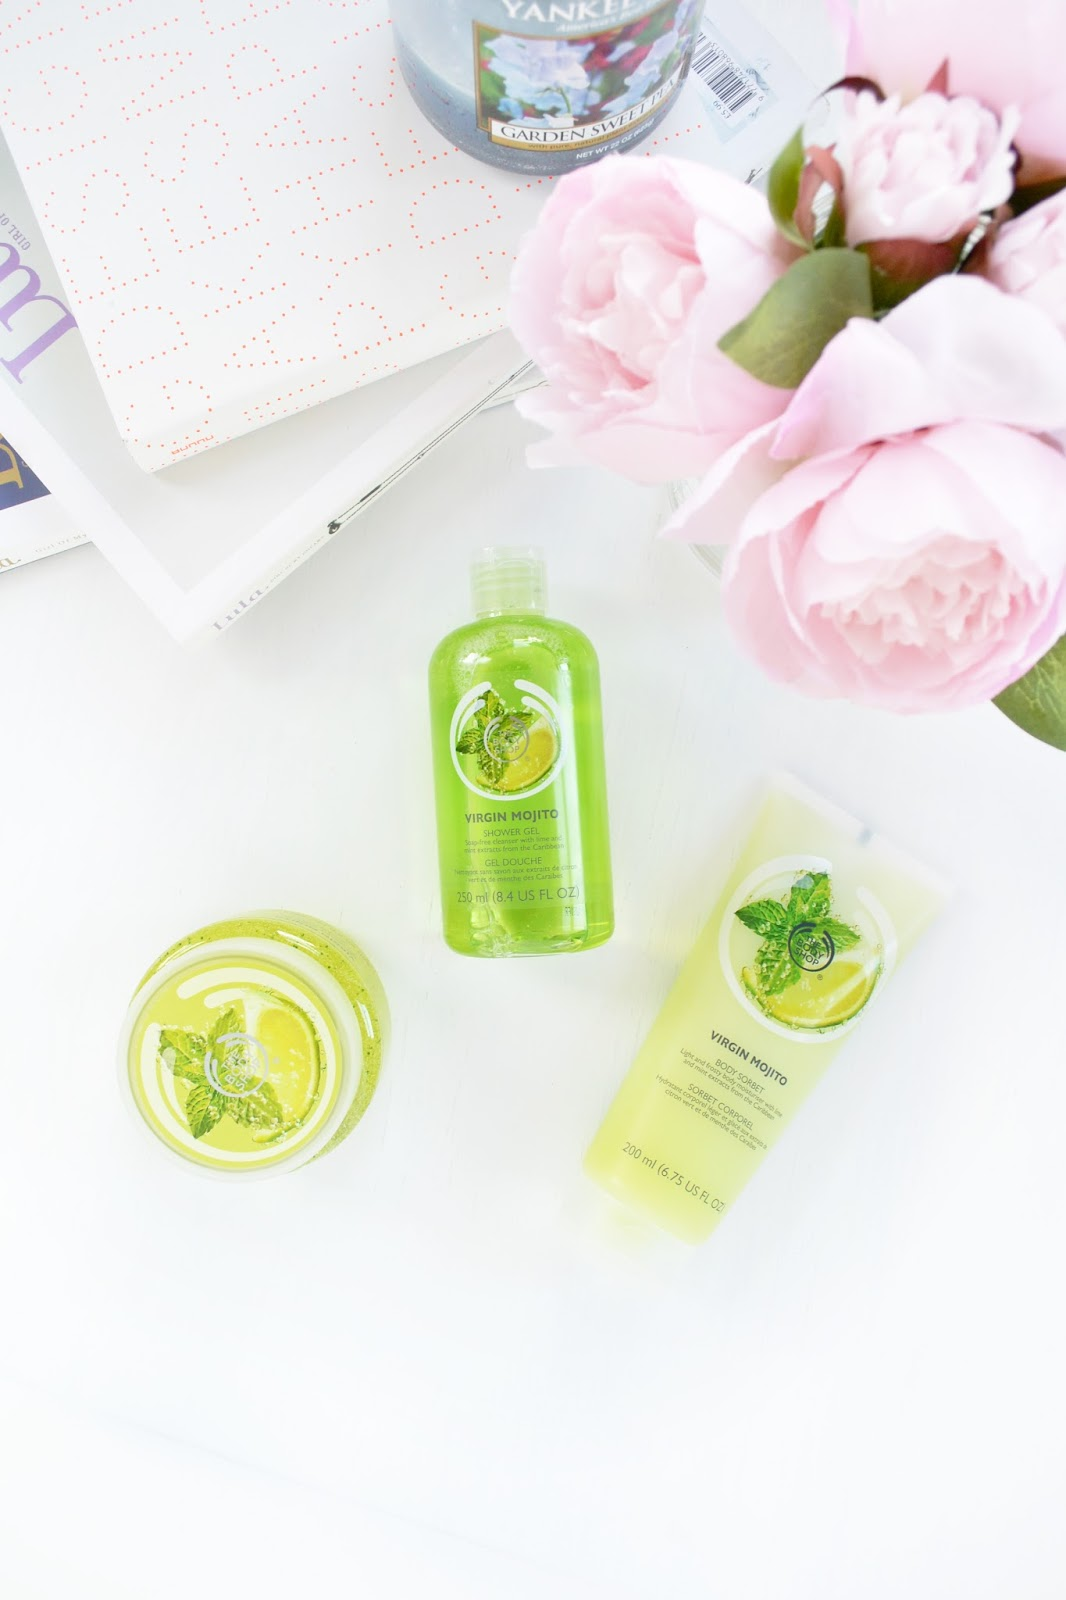 Virgin Mojito From The Body Shop